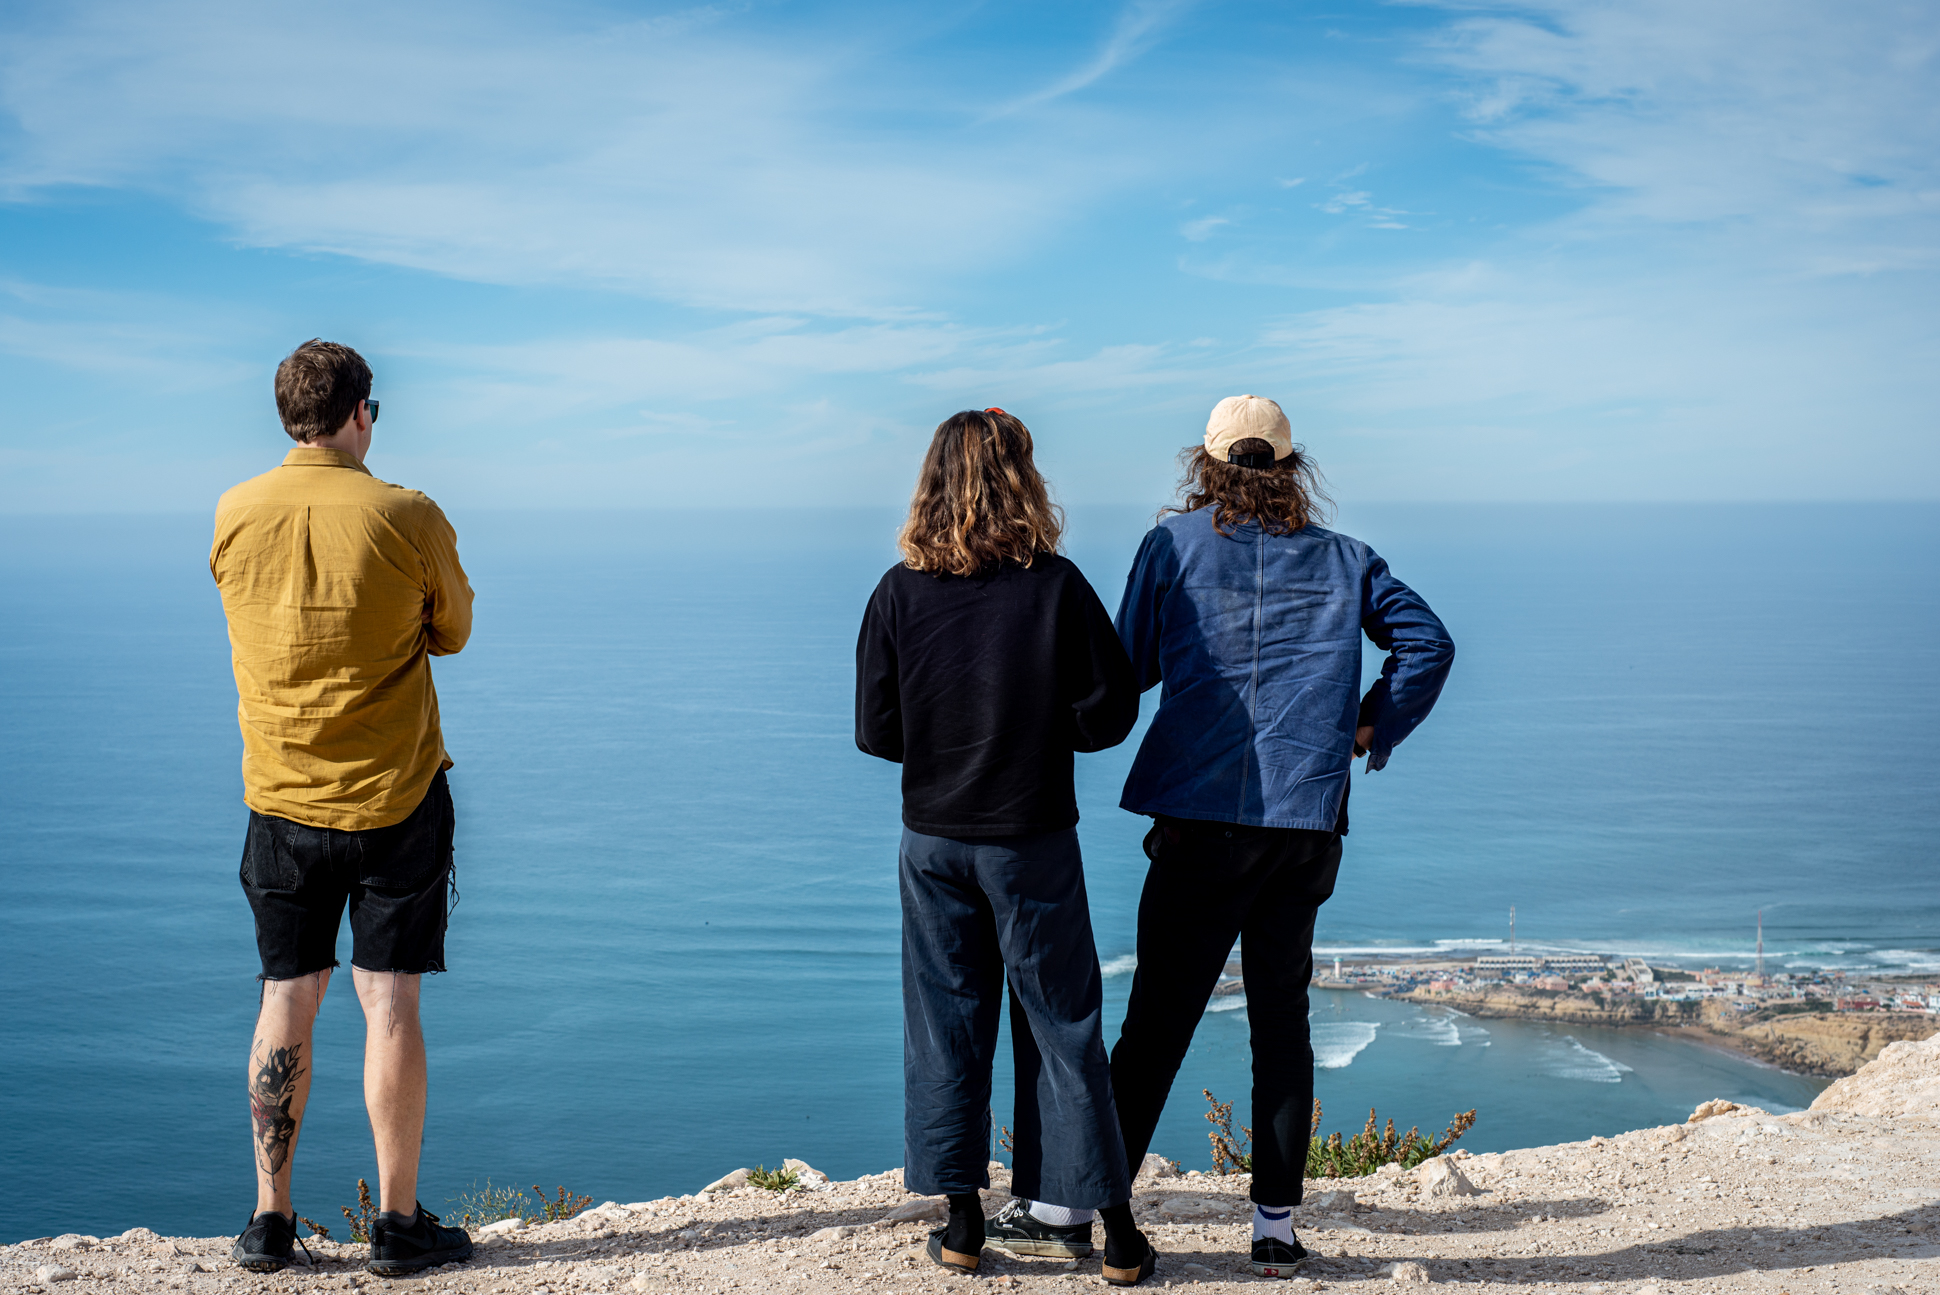 Standing on a cliff, watching over Imsouane and the deep blue sea of Morocco.